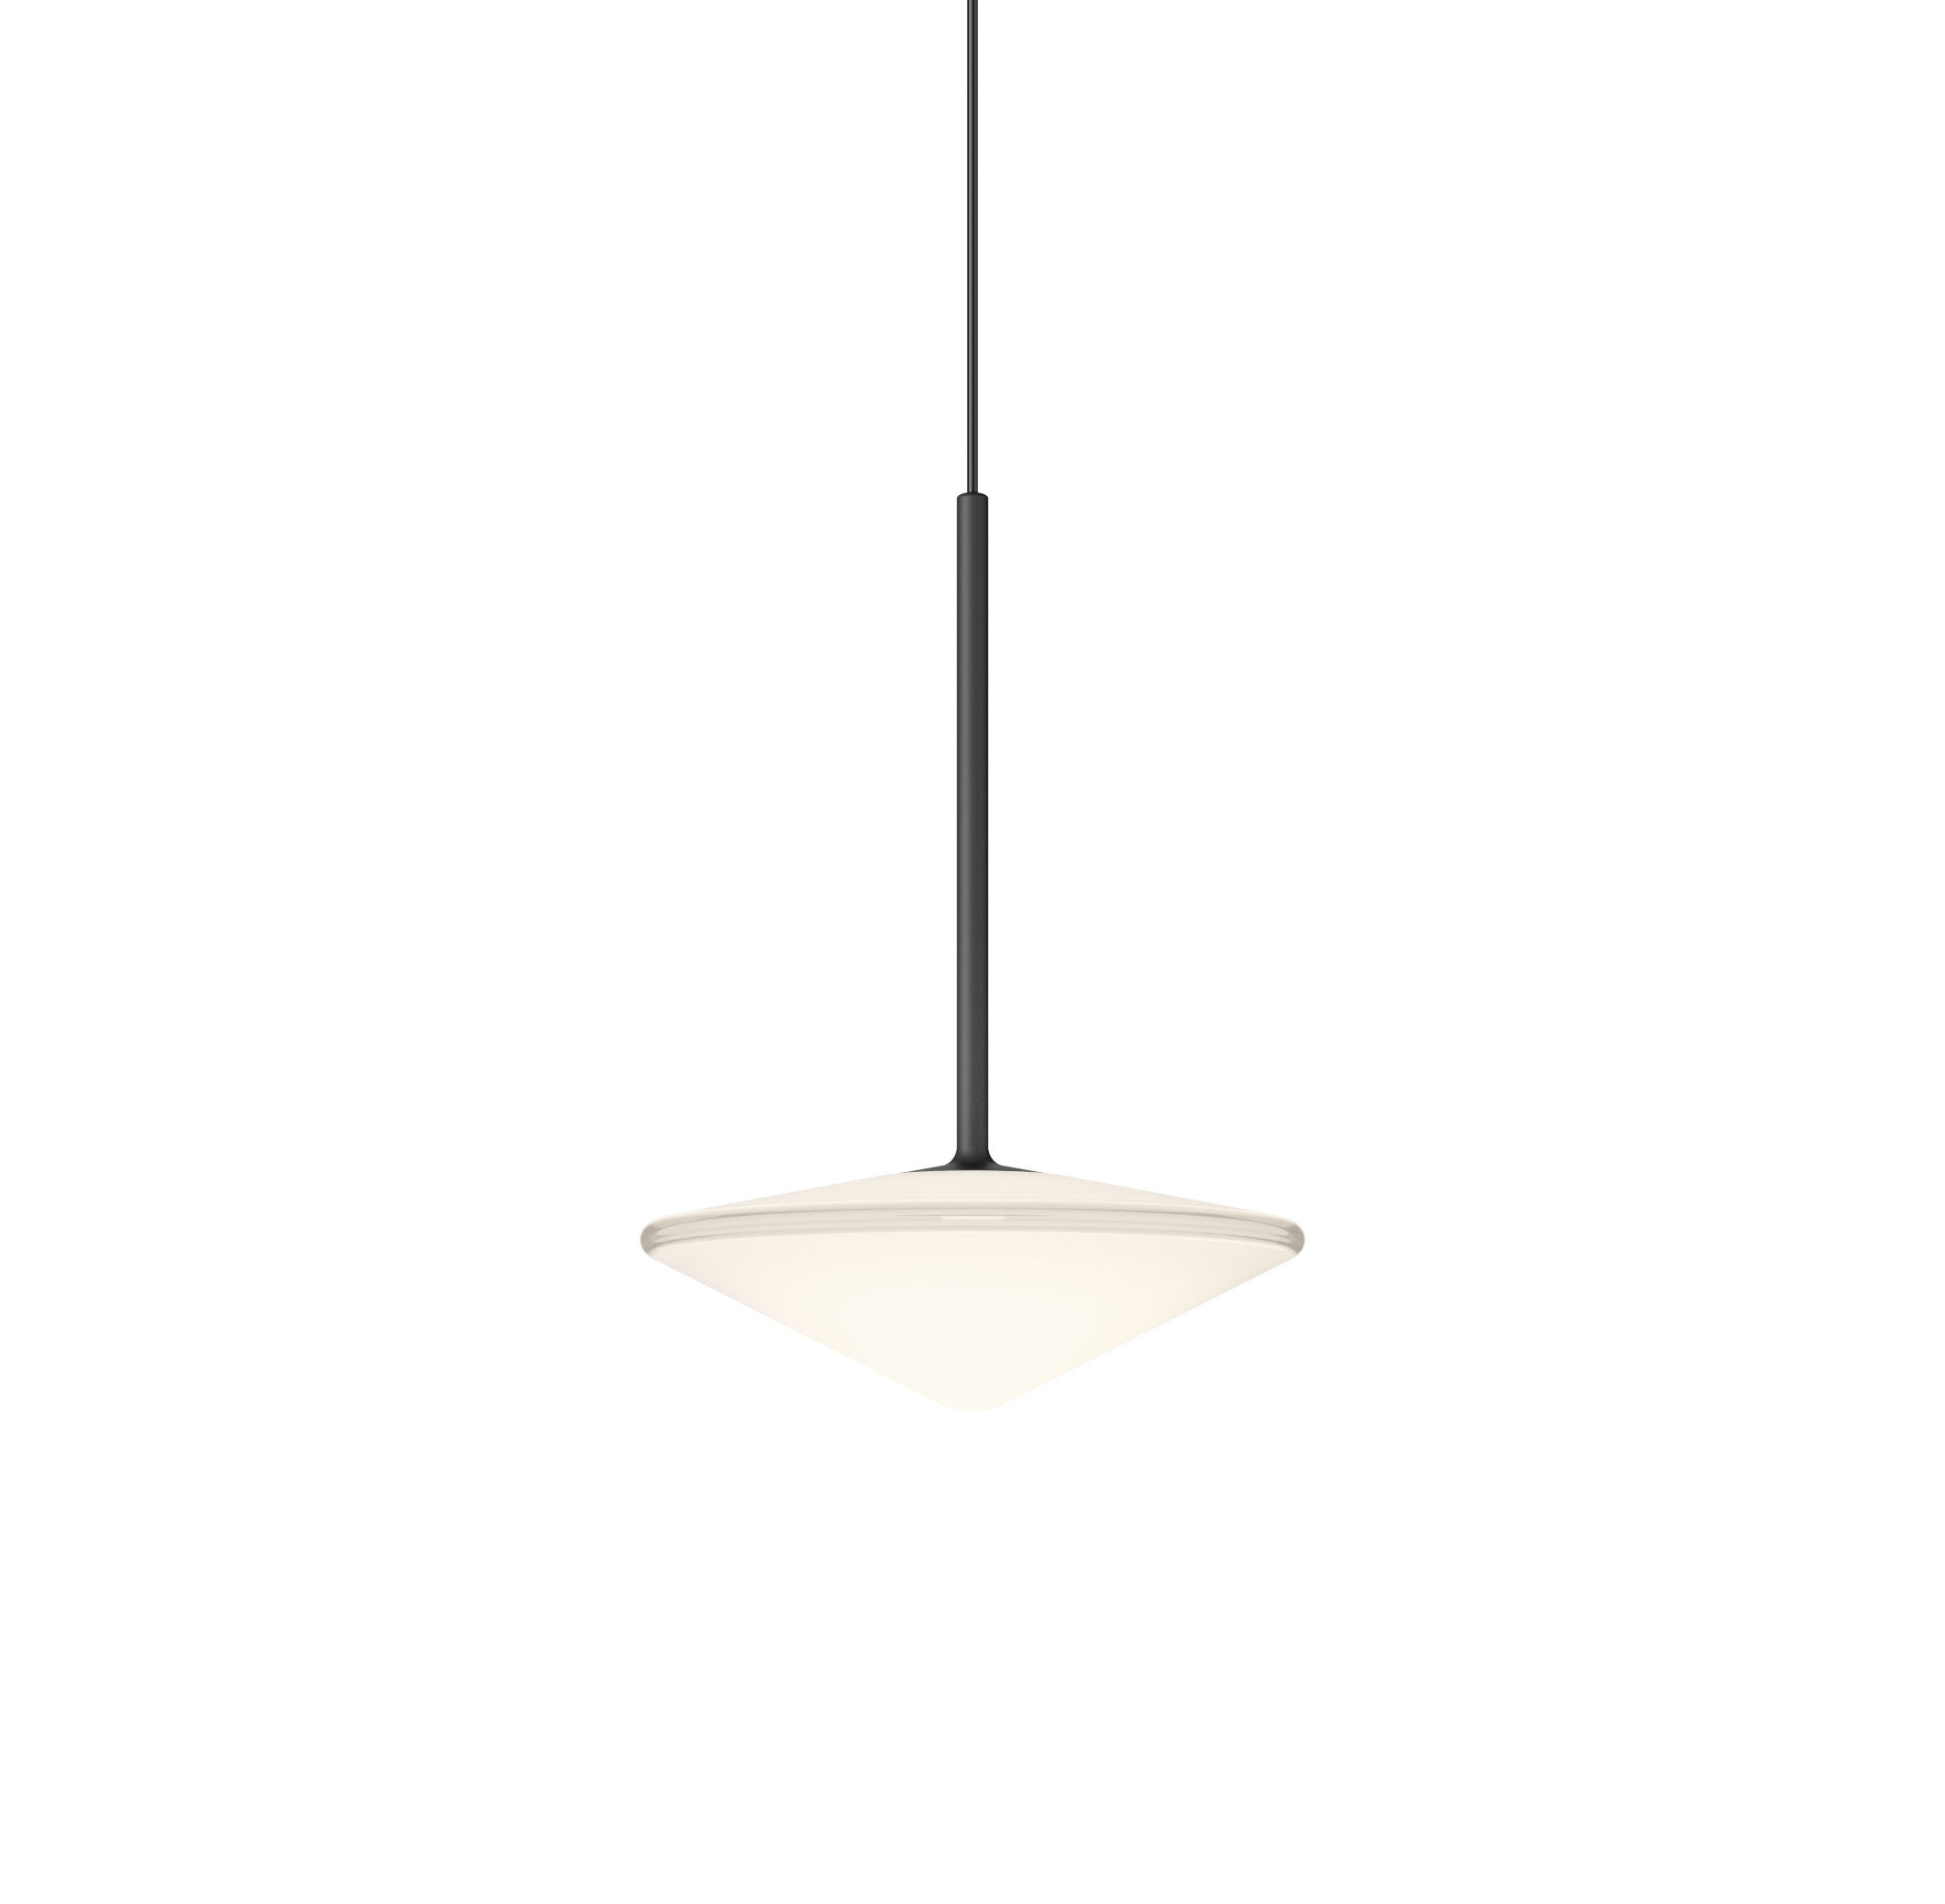 Lighting - Pendant Lighting - Tempo Triangle Pendant - / LED - Ø 20.5 cm by Vibia - Graphite grey - Blown glass, Varnished aluminium